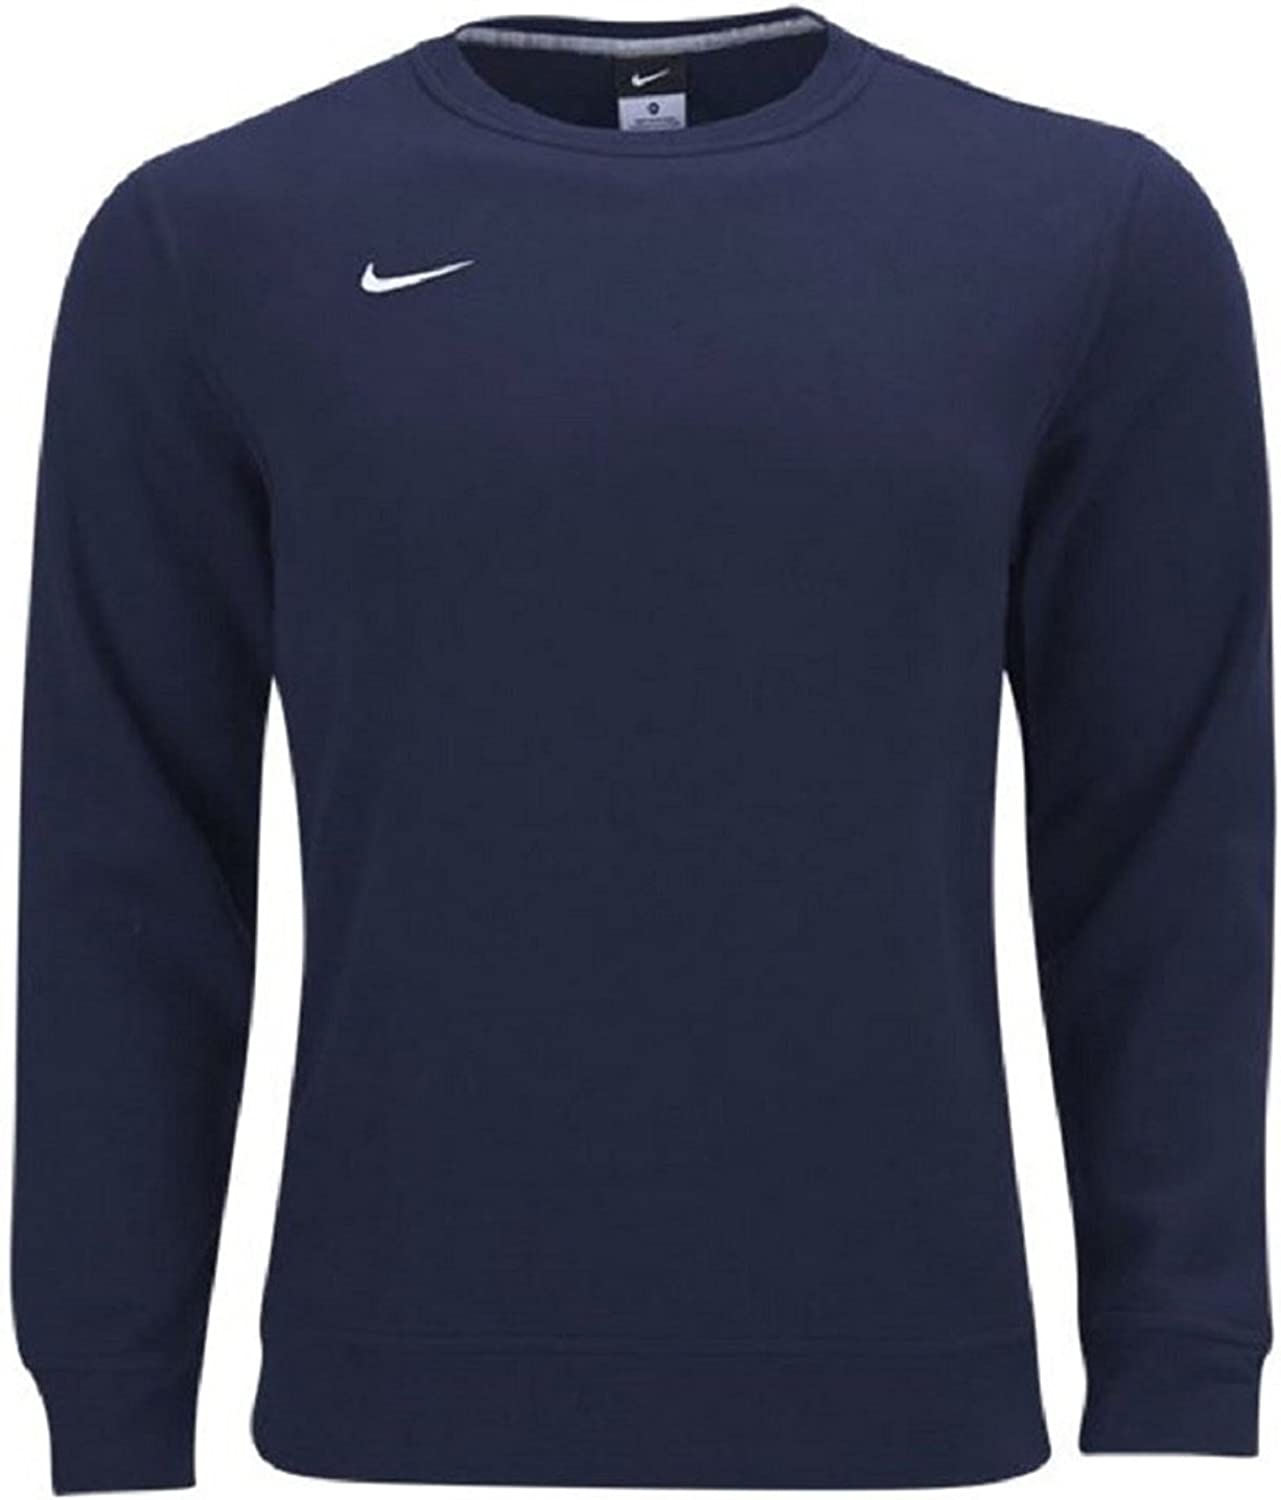 Special sale item Nike Mens Team Club Fleece White Navy OFFicial XX-Large Sweater Crew